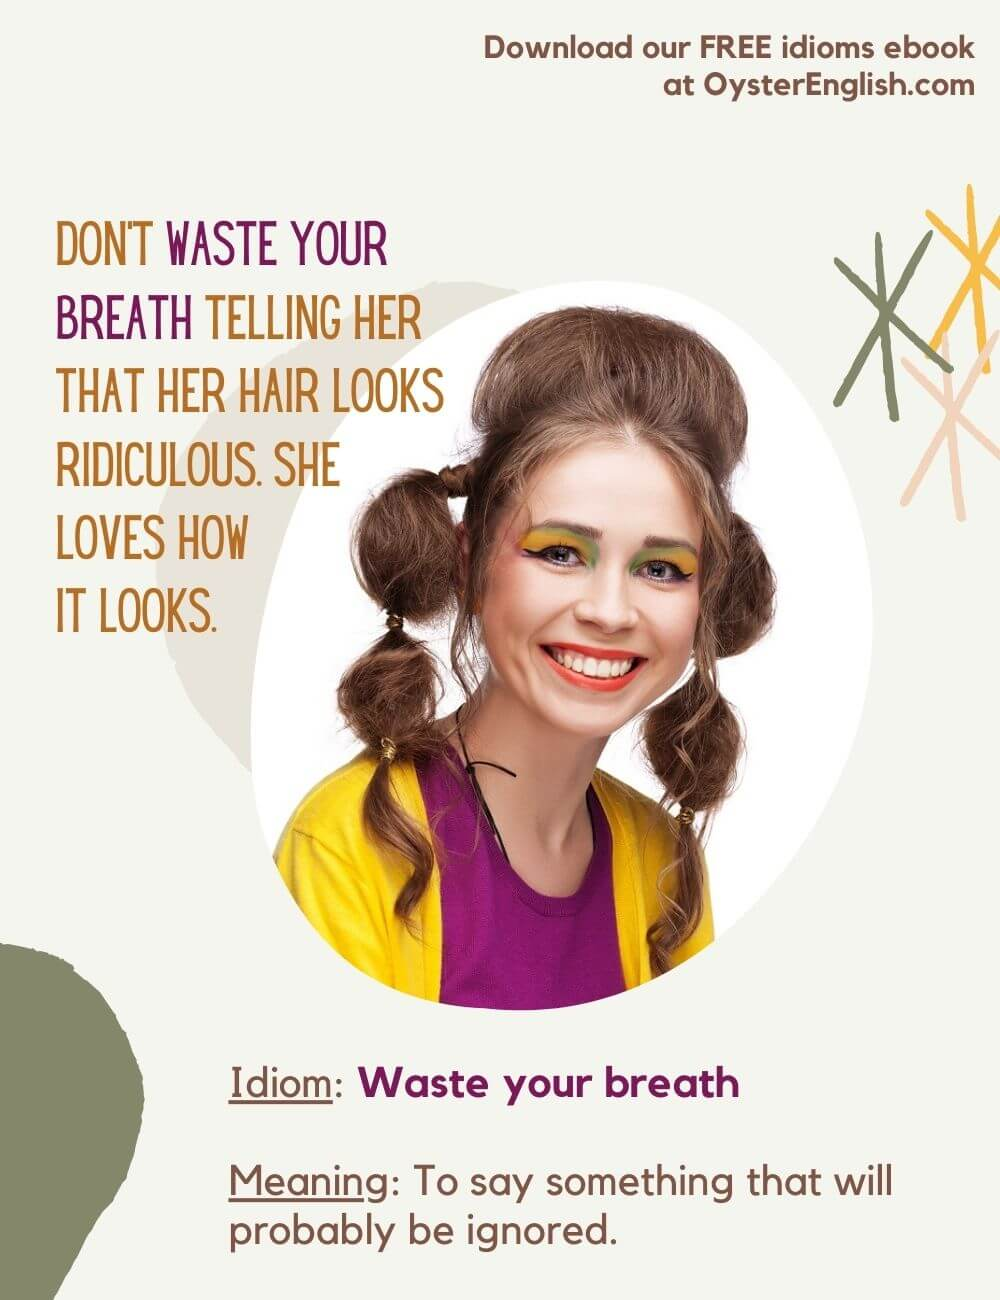 A woman has styled her hair in a crazy way with round balls of hair in ponytails. Caption: Don't waste your breath telling her that her hair looks ridiculous. She loves how it looks.